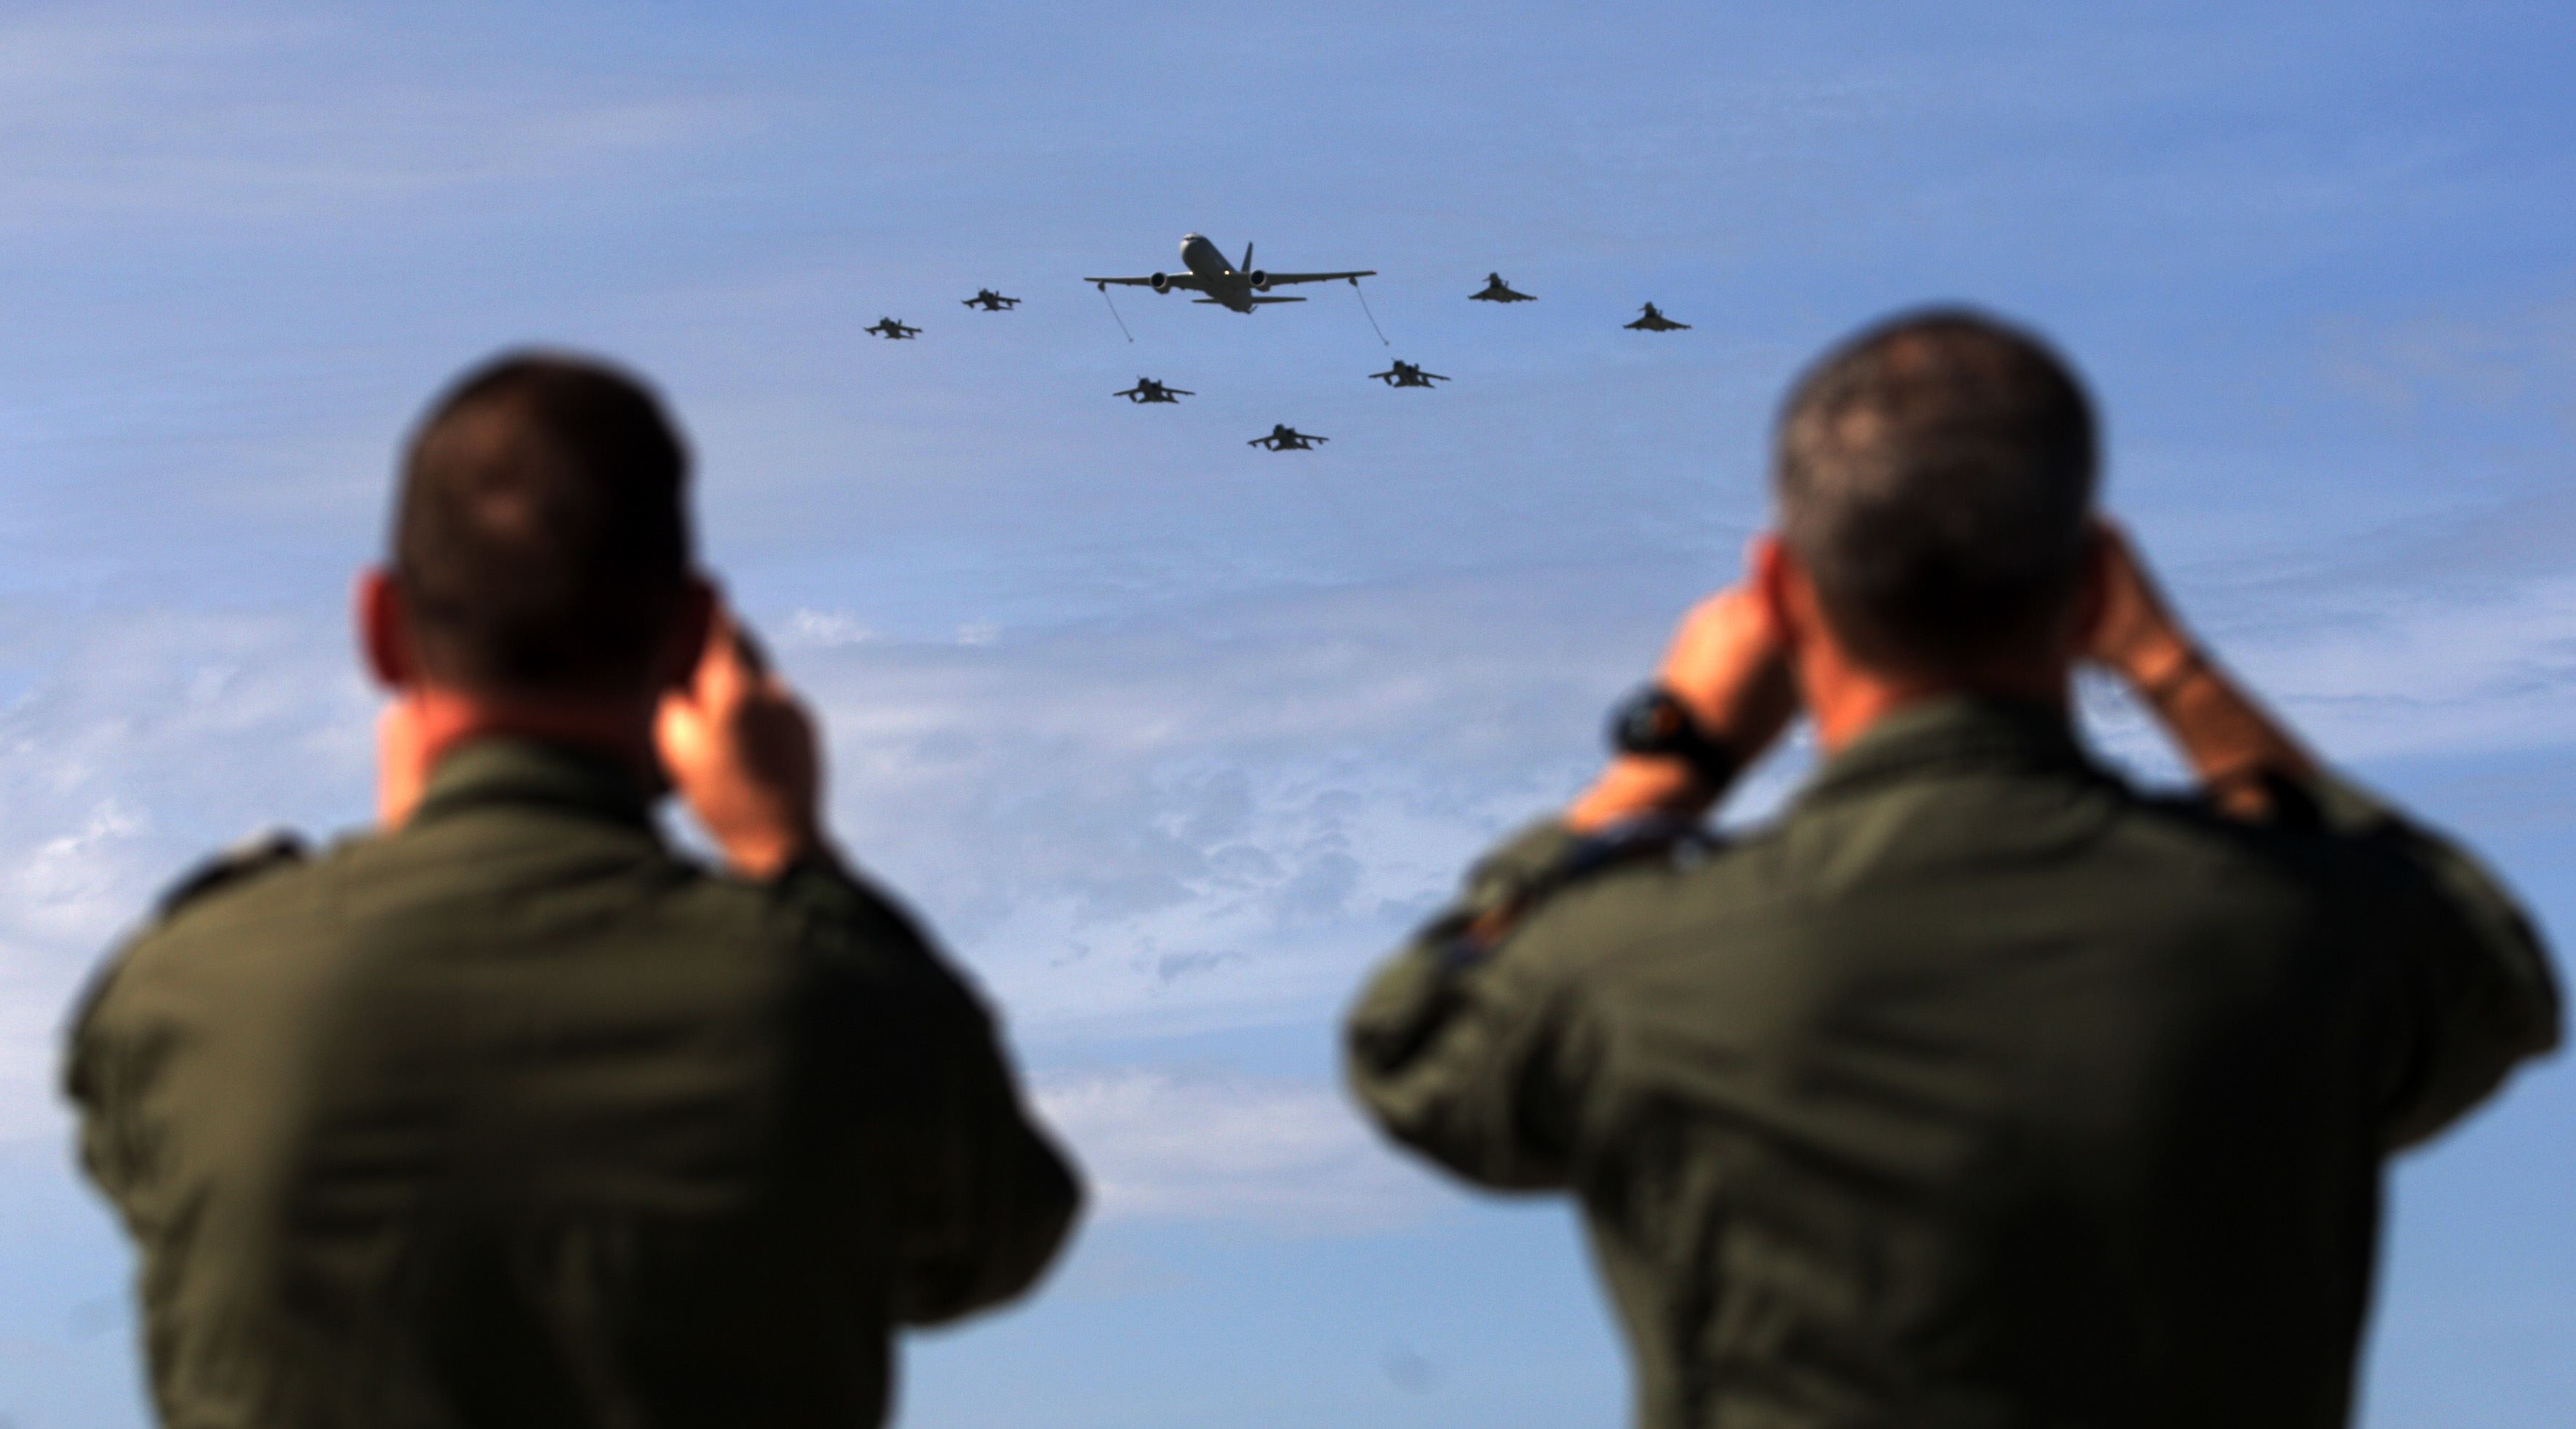 Soldiers take pictures of military aircraft taking part in the opening ceremony of NATO's large-scale Trident Juncture 2015 exercise at an Italian Air Force base in Trapani, Sicily, earlier this month. | AFP-JIJI